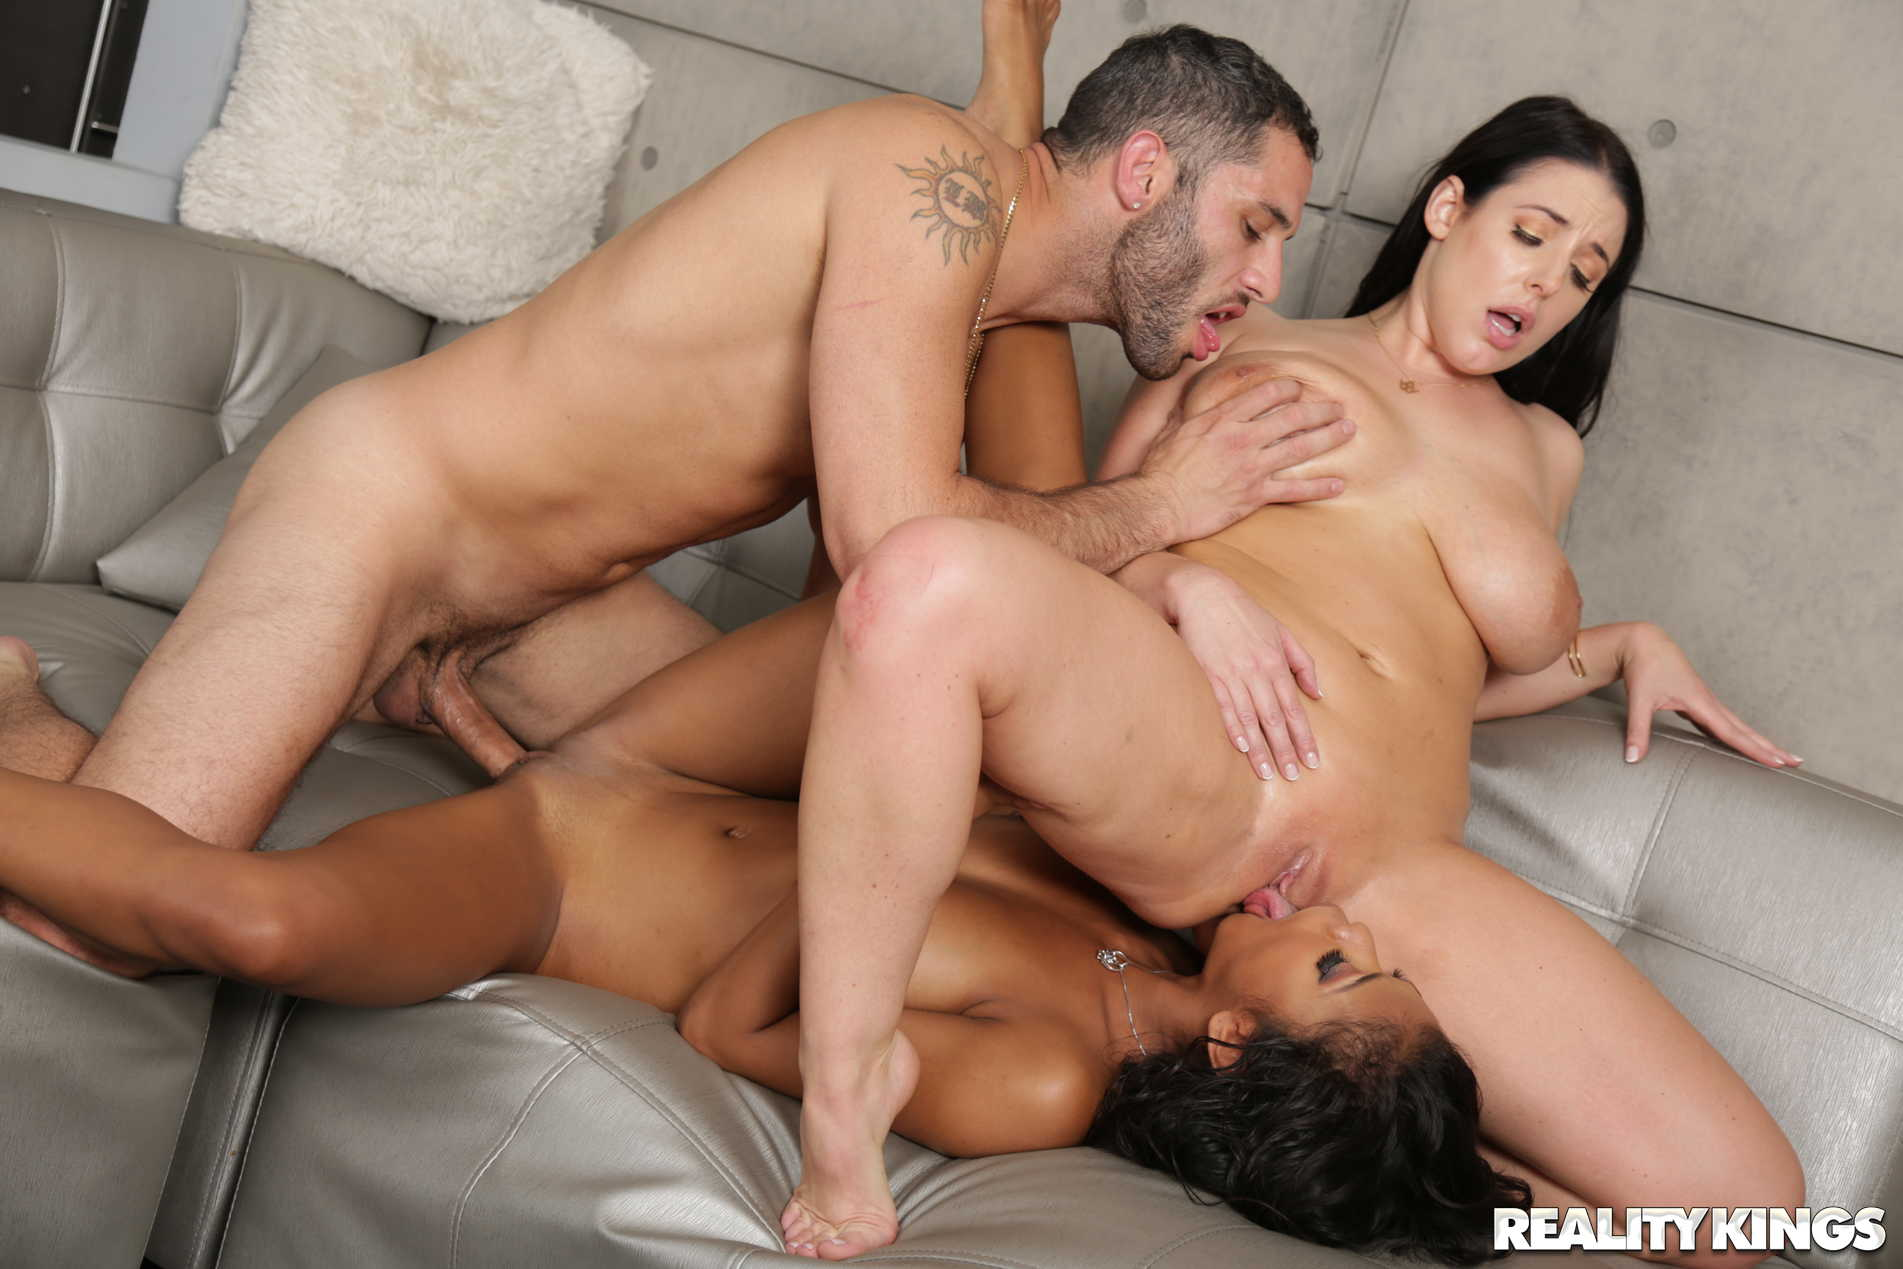 Reality Kings 'Meat And Greet' starring Angela White (Photo 269)